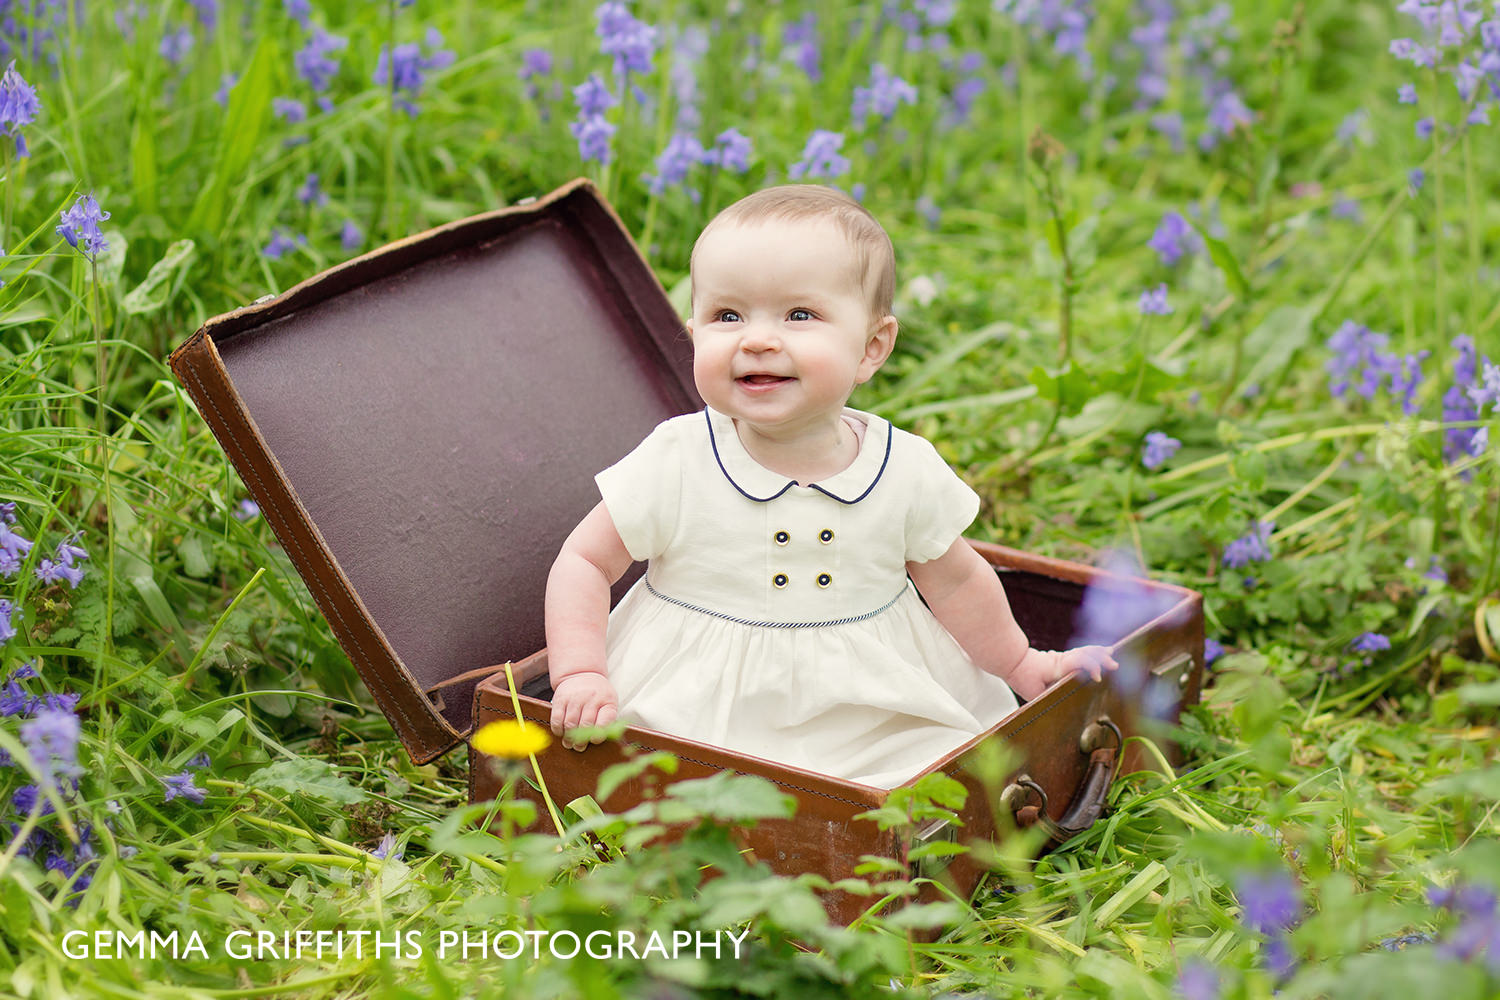 Sisters Spring Photo Session with Gemma Griffiths Photography